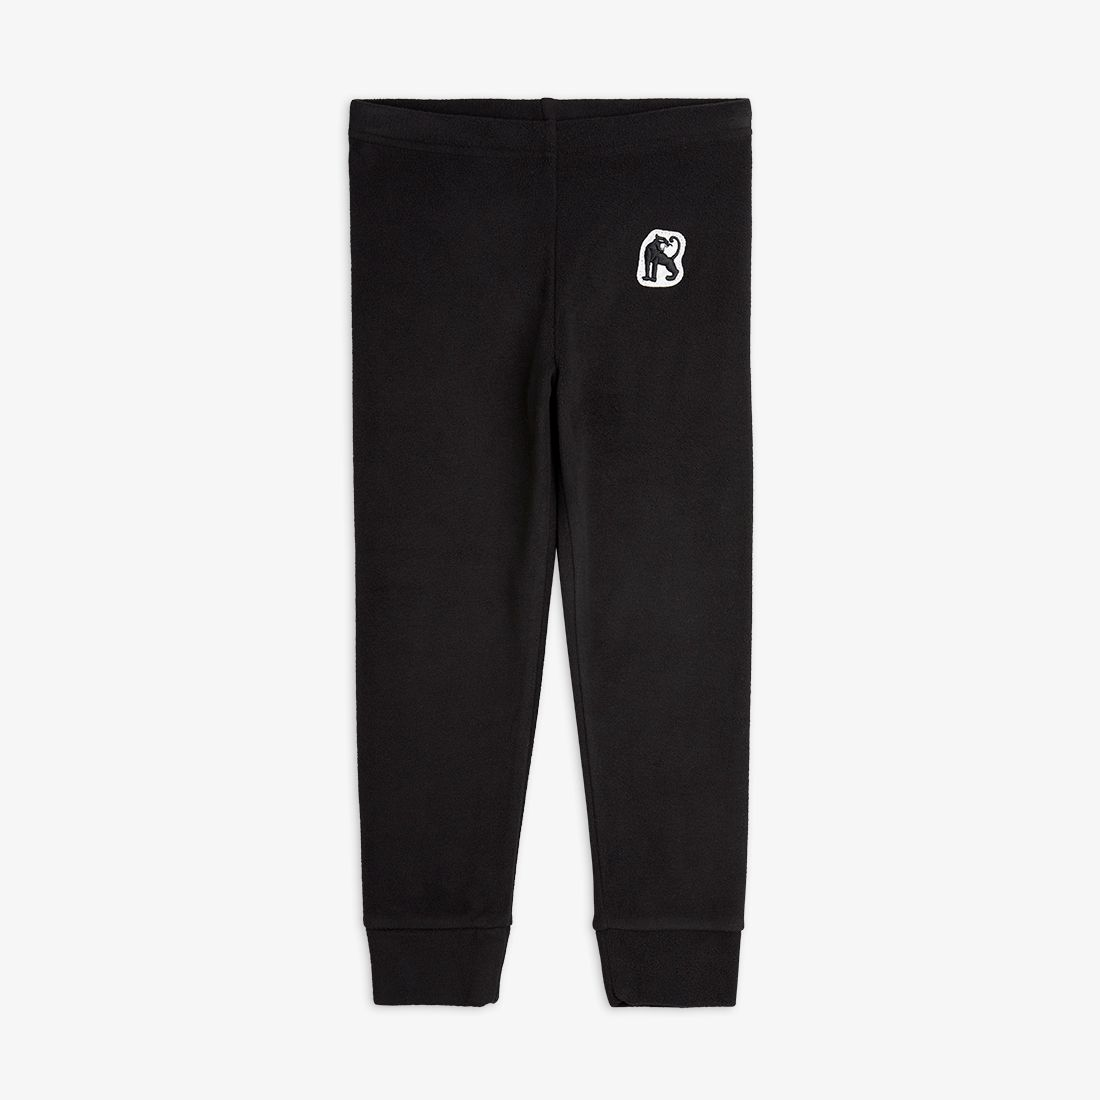 Panther Microfleece Trousers